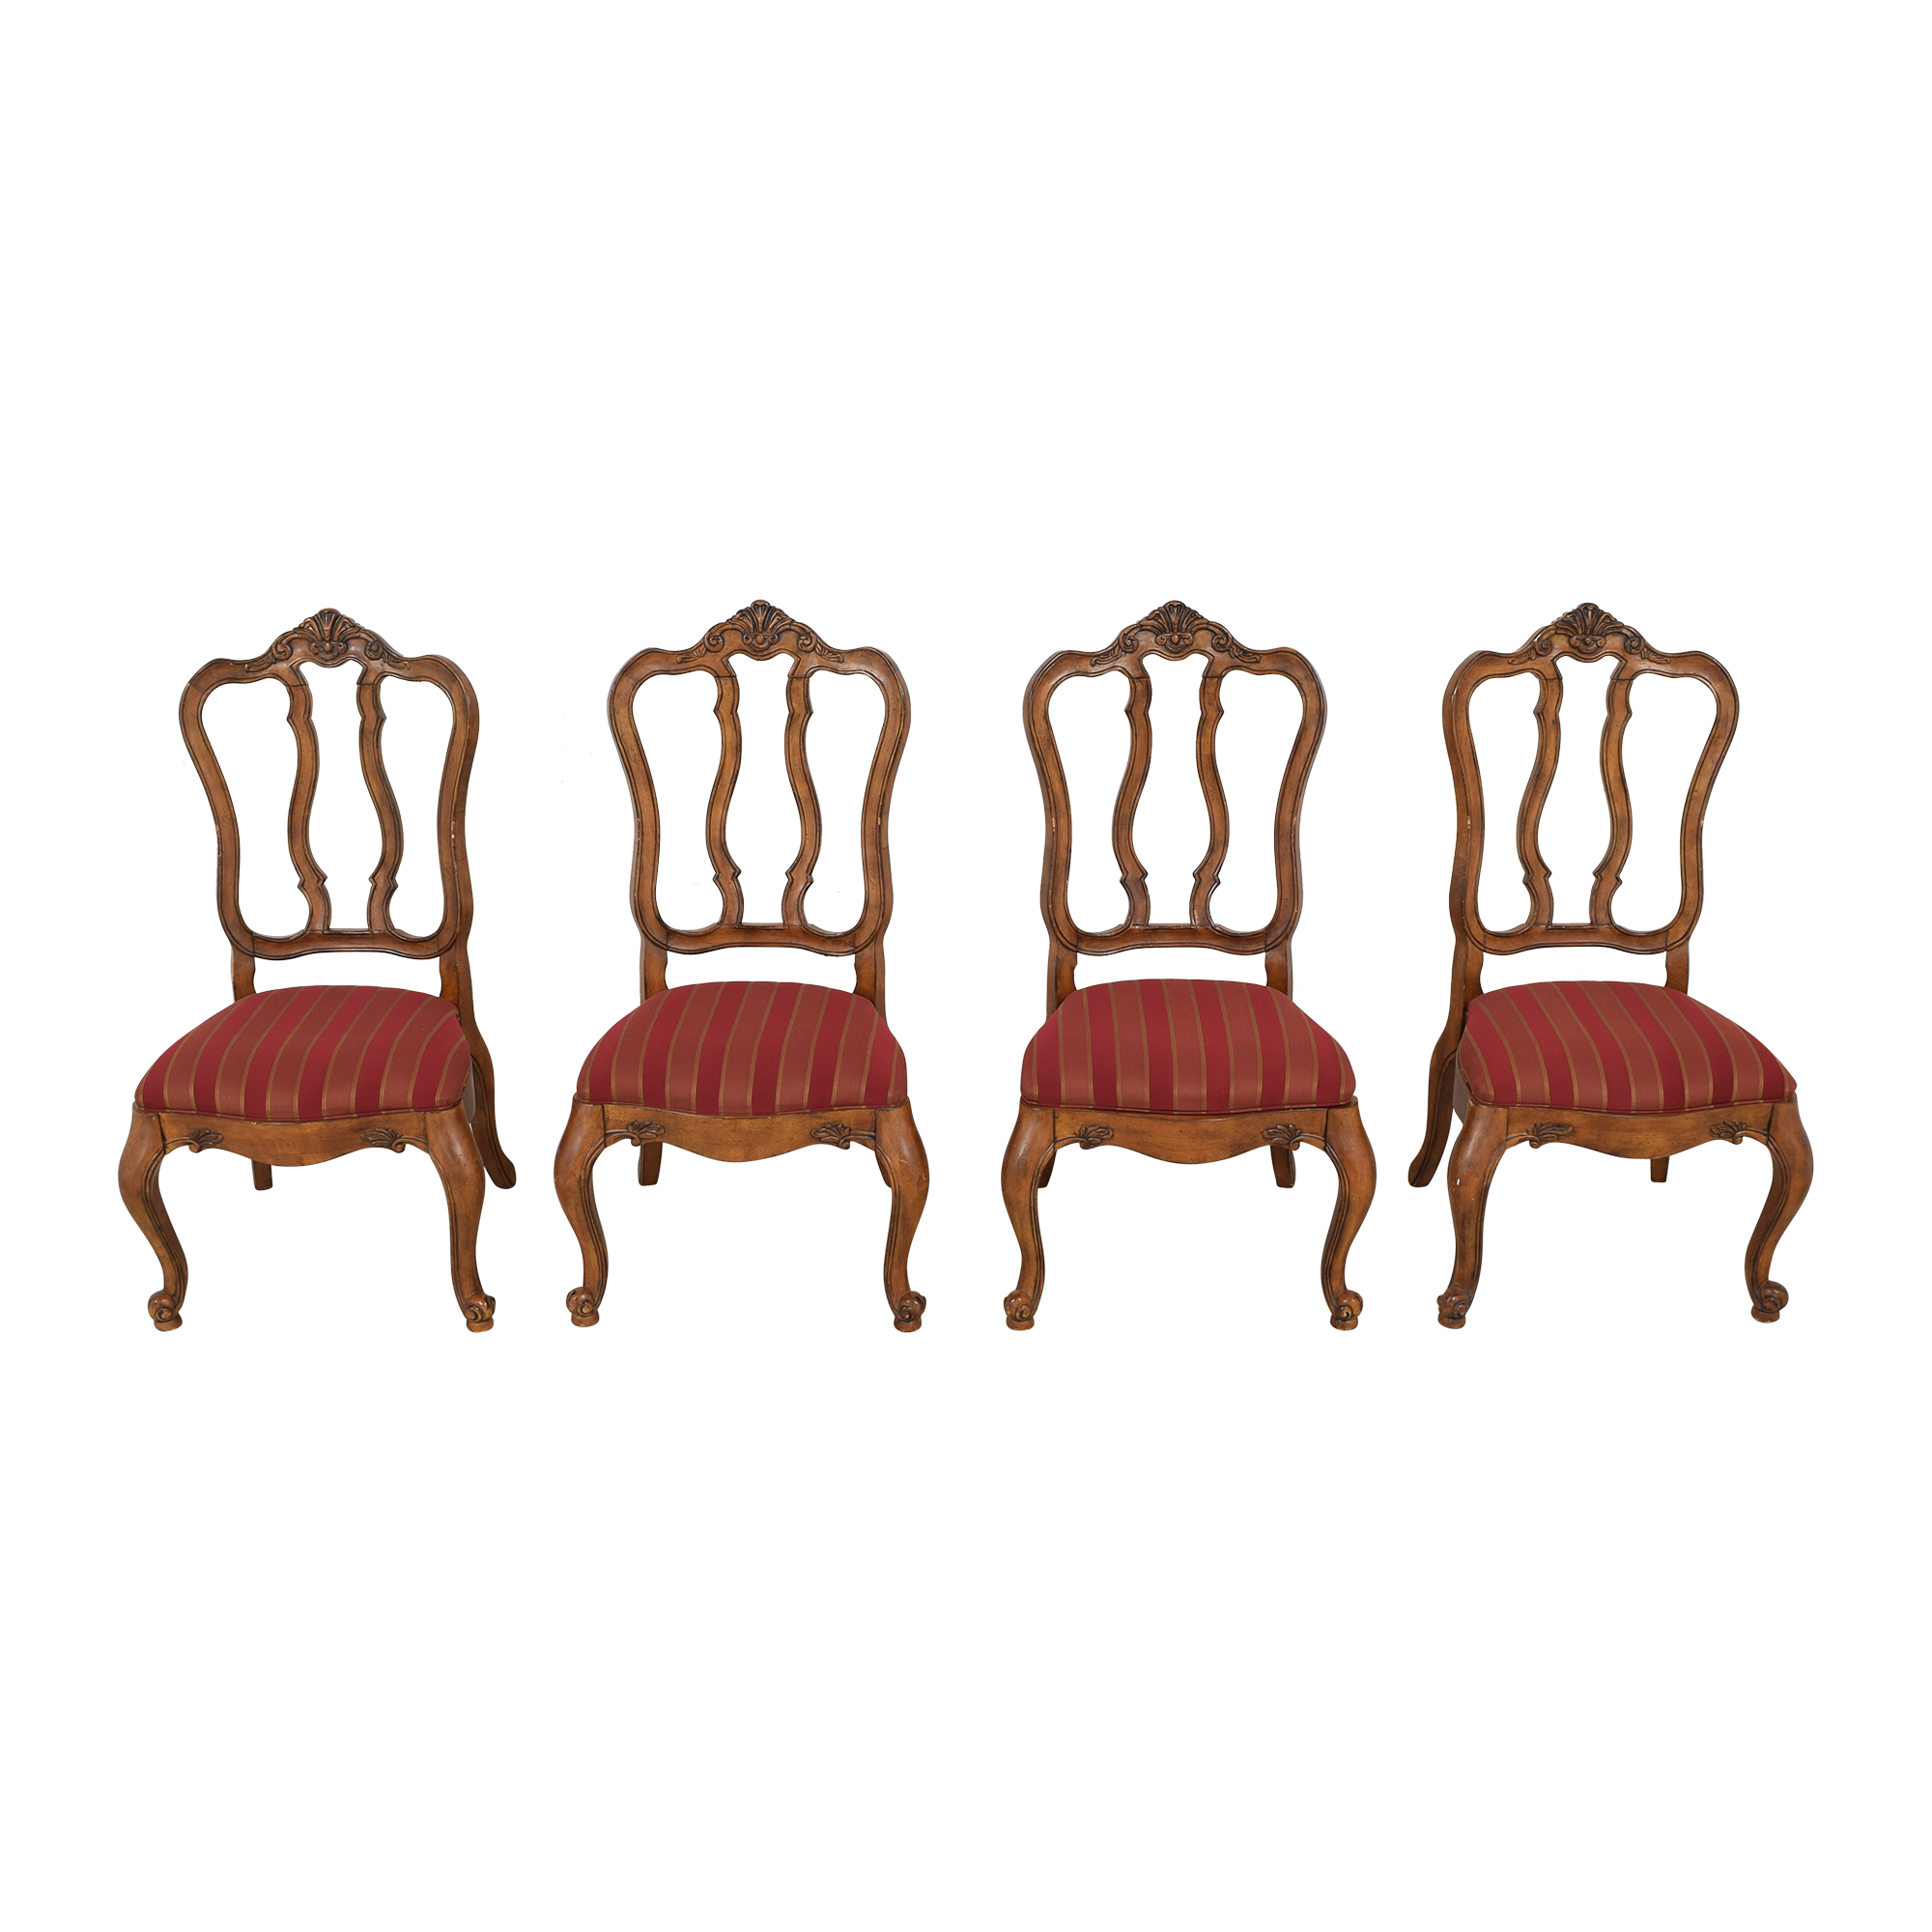 Ethan Allen Ethan Allen Tuscany Augustine Dining Chairs for sale